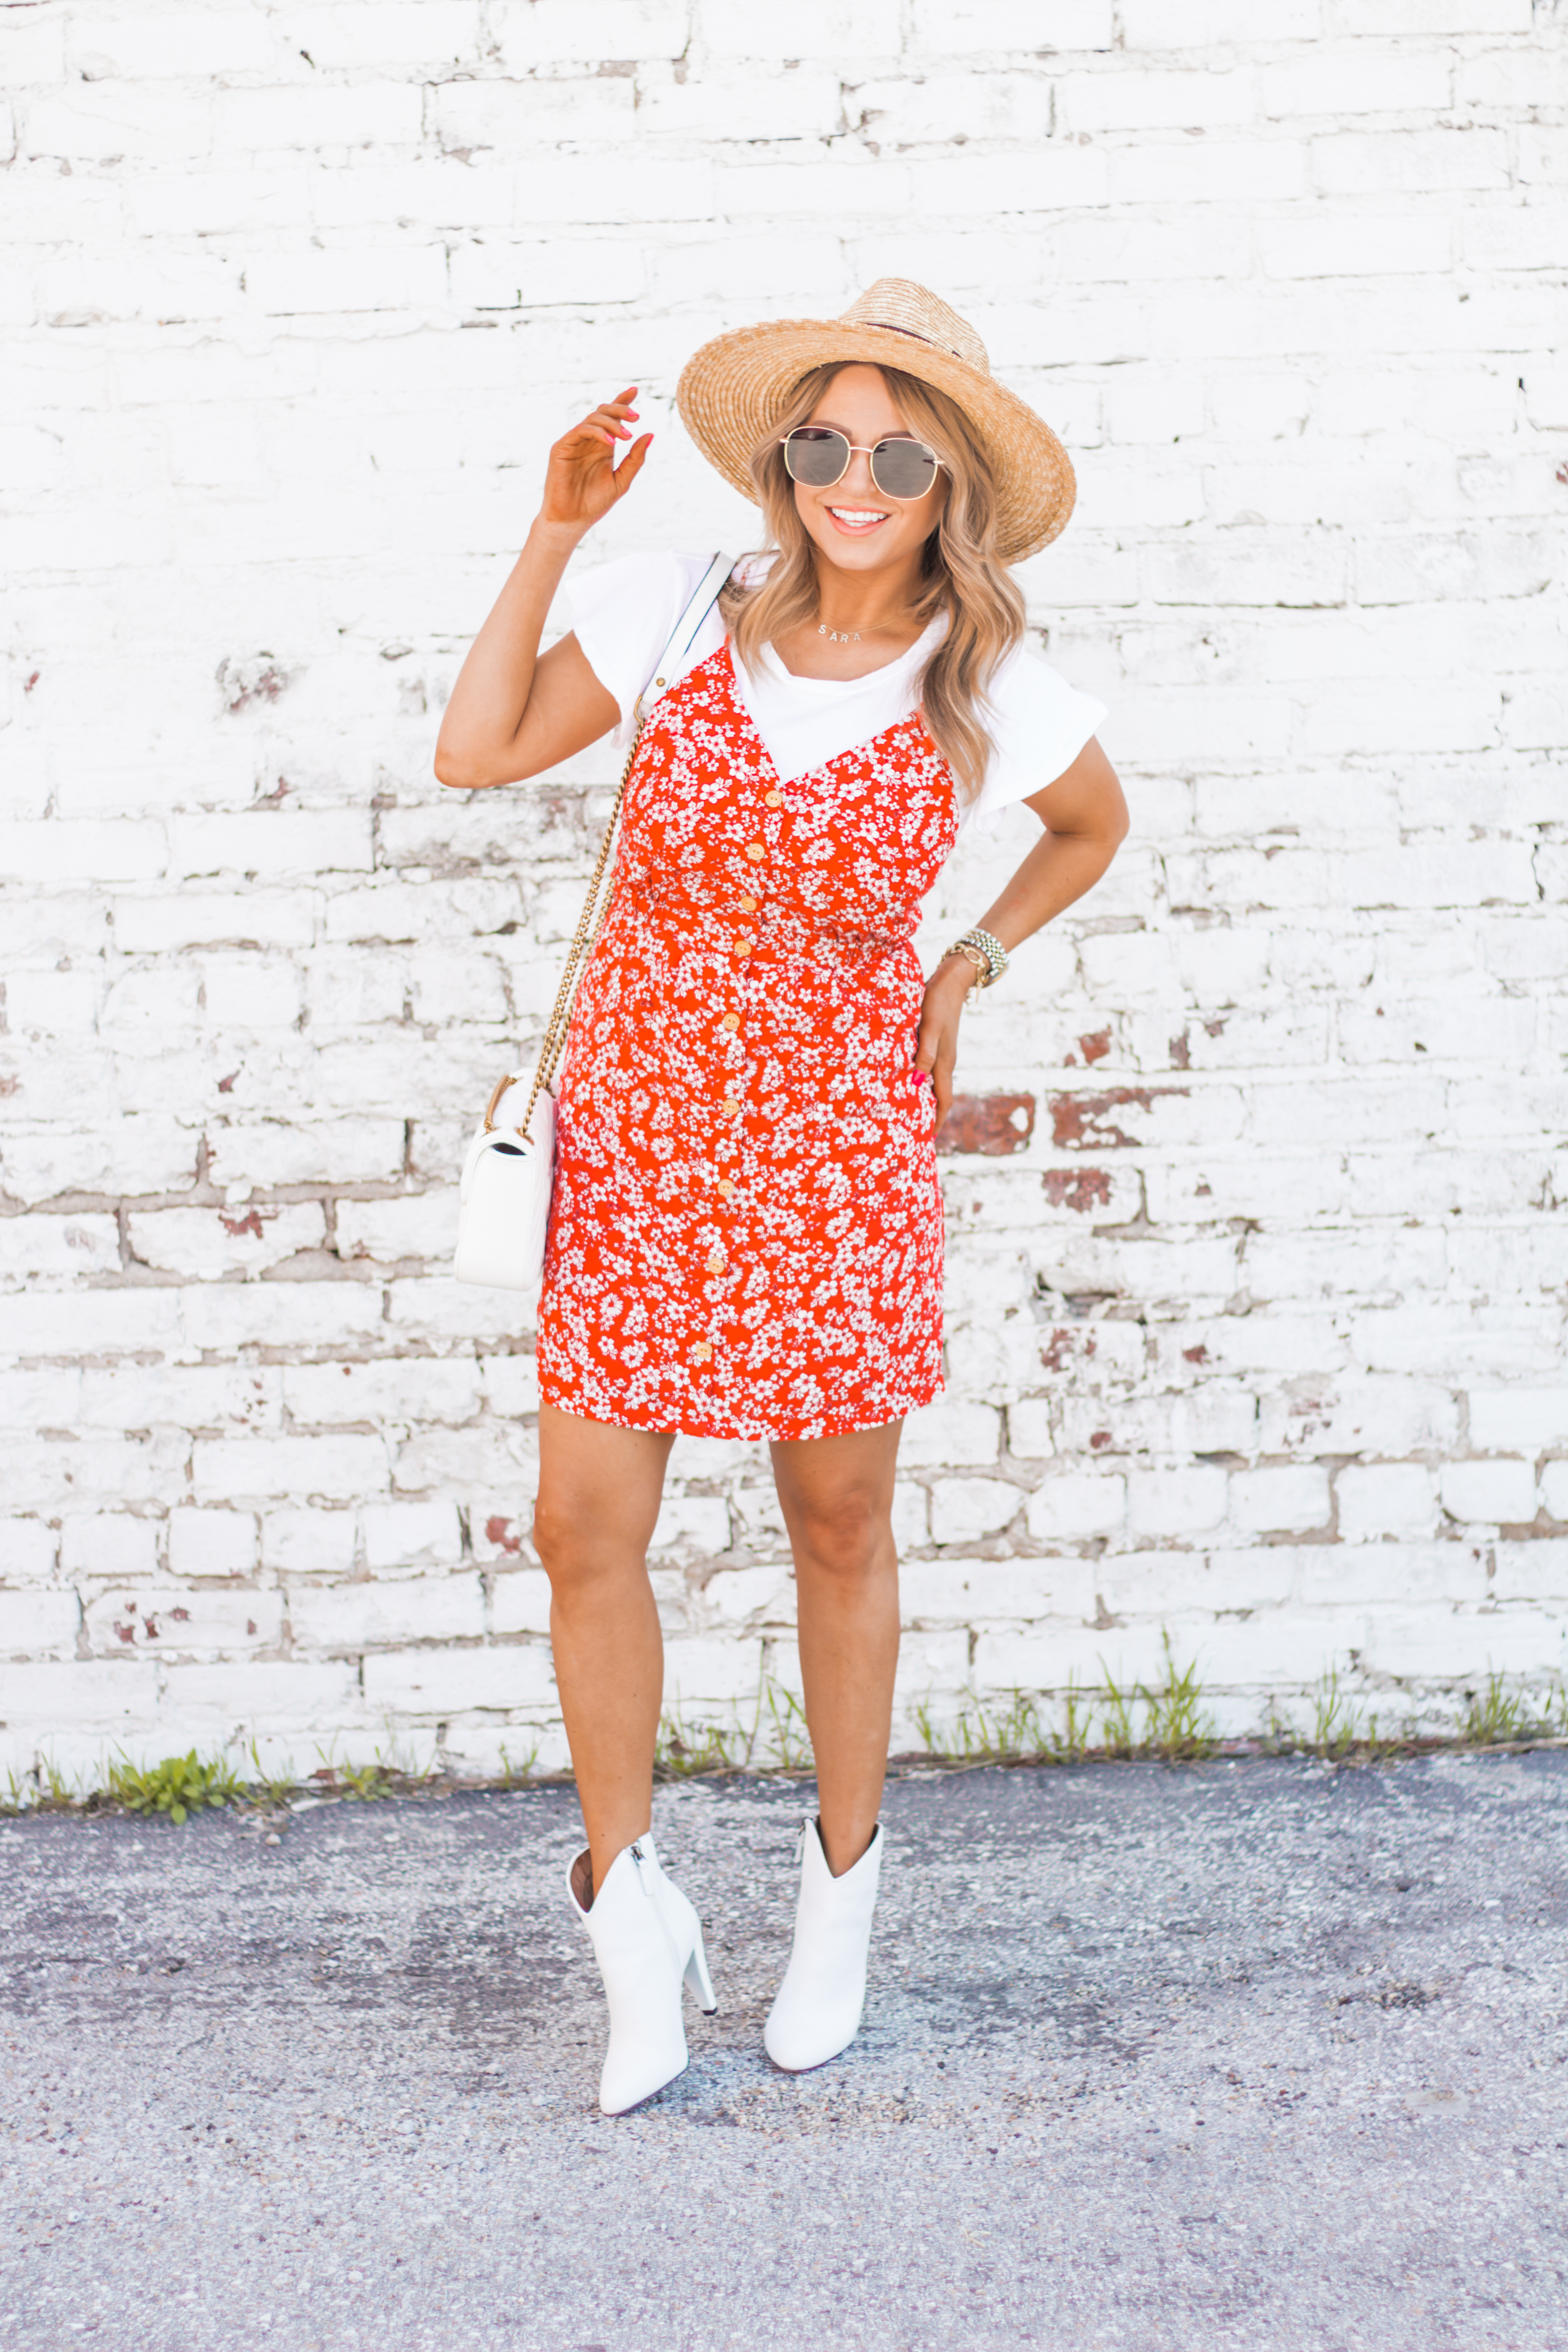 red-sundress-spring-summer-dress-floral dress-women's fashion- spring fashion-summer fashion-brixton hat-white booties-Omaha blogger-sabby style-12